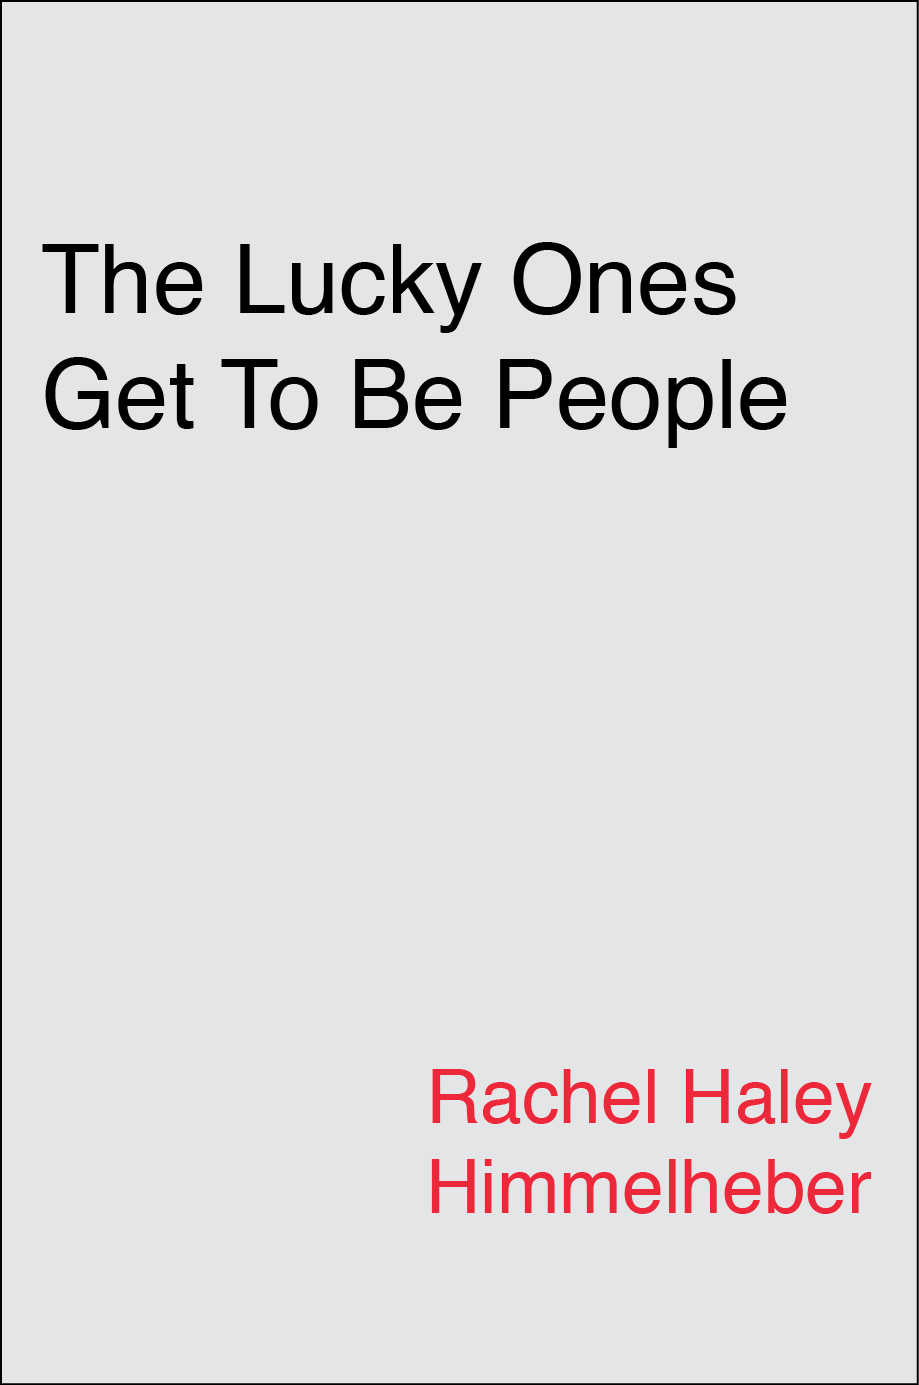 The Lucky Ones Get To Be People by Rachel Haley Himmelheber